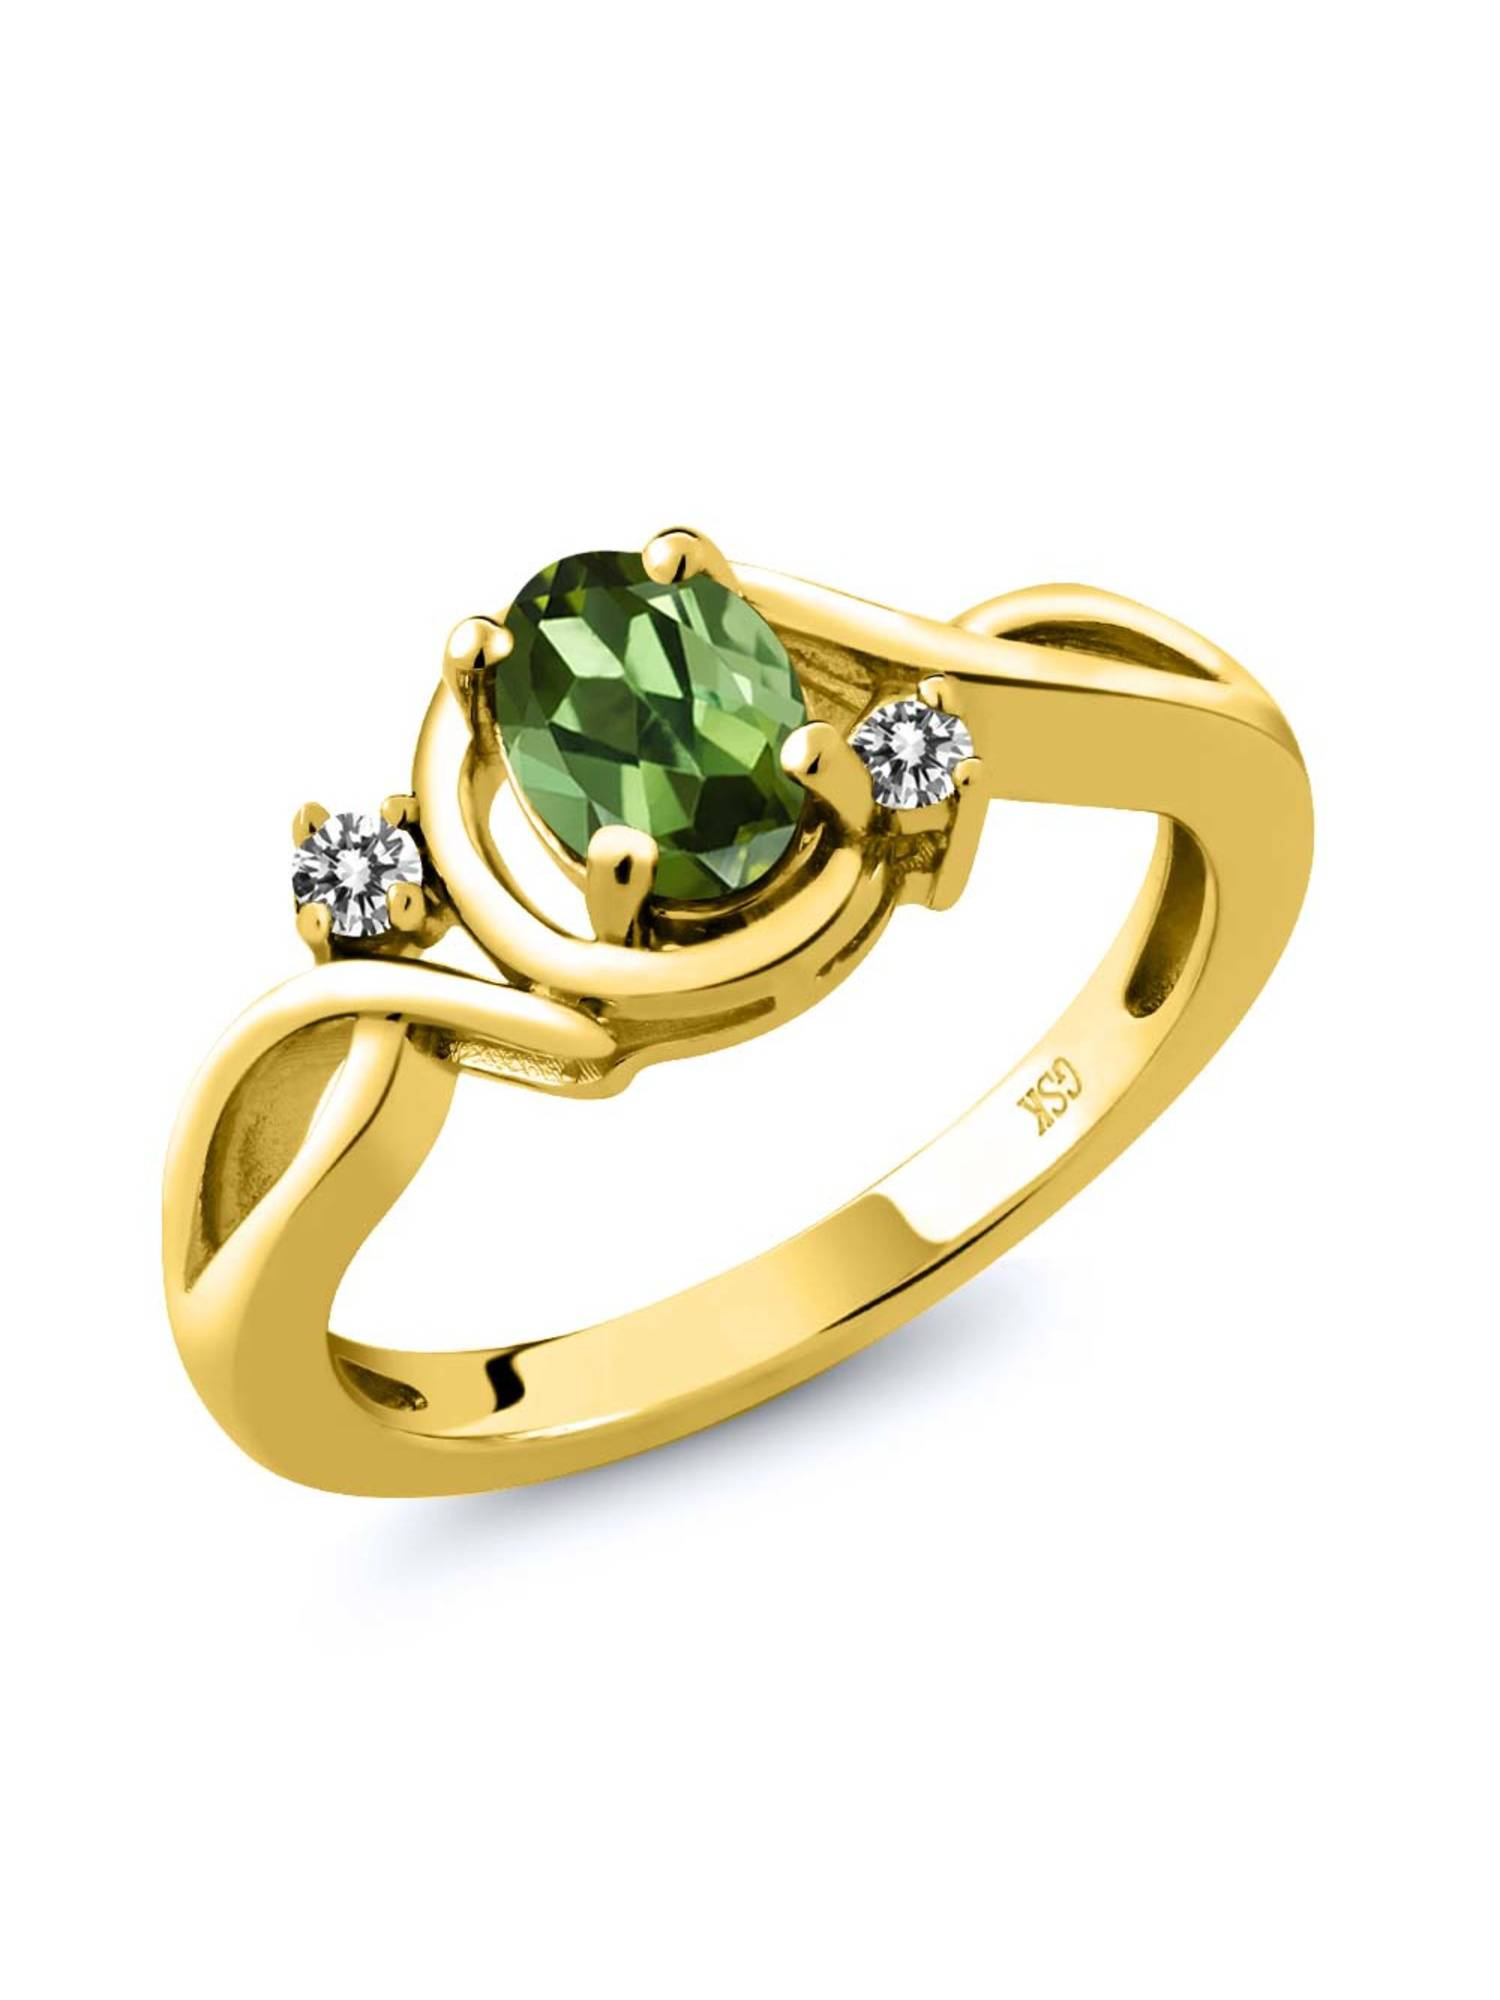 0.77 Ct Oval Green Tourmaline White Diamond 18K Yellow Gold Plated Silver Ring by